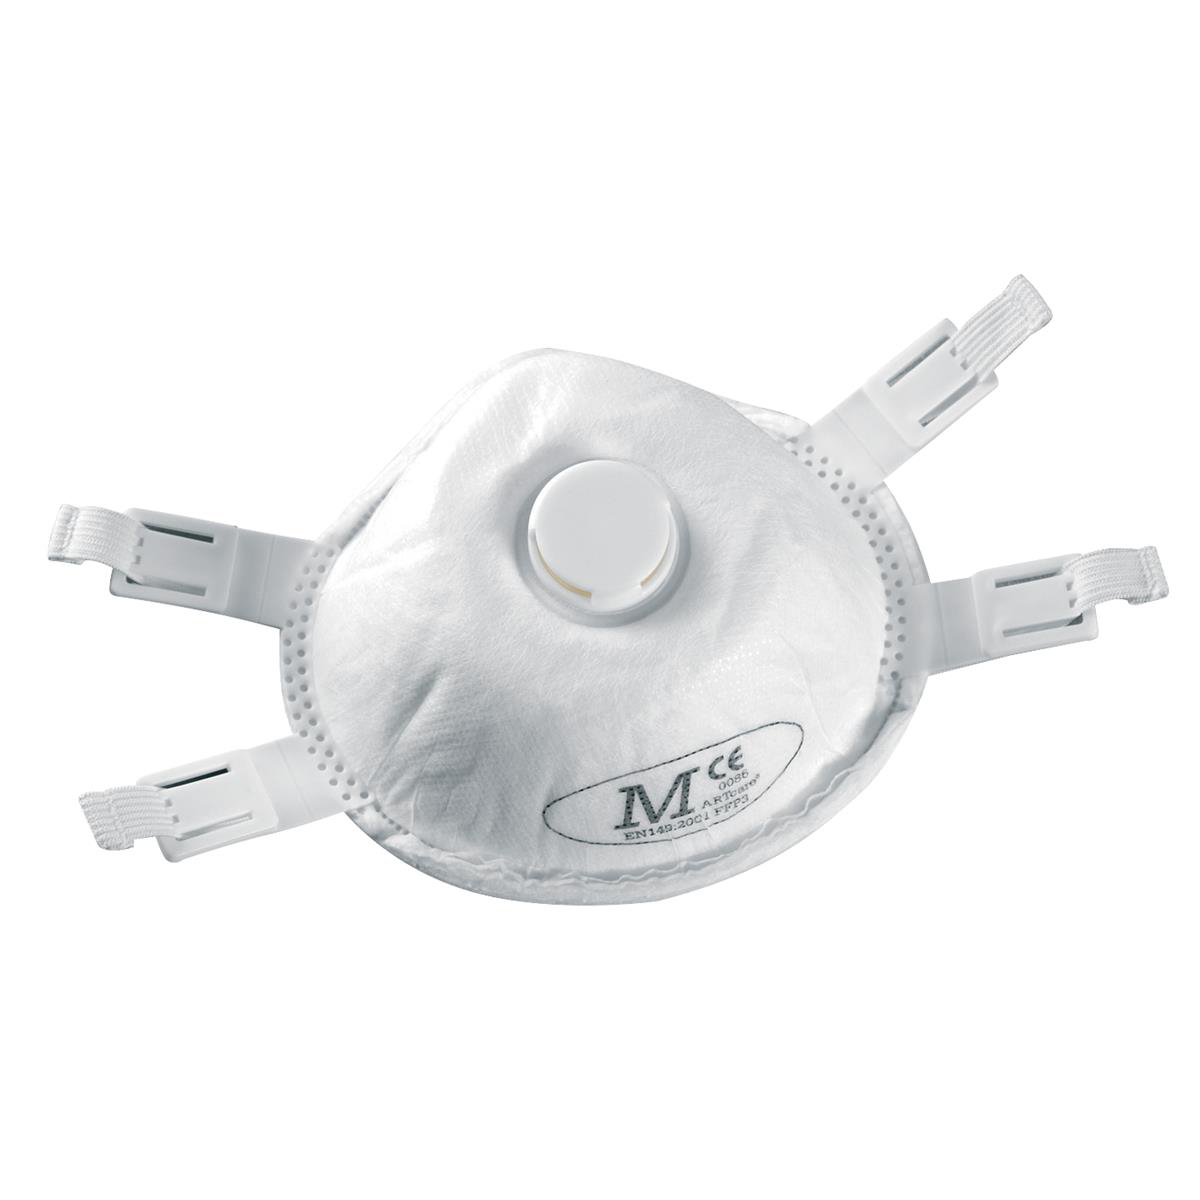 Masks or accessories JSP Disposable Mask FFP3 Moulded Valved EN149 Standard Ref BEH130-001-000 [Pack 5]